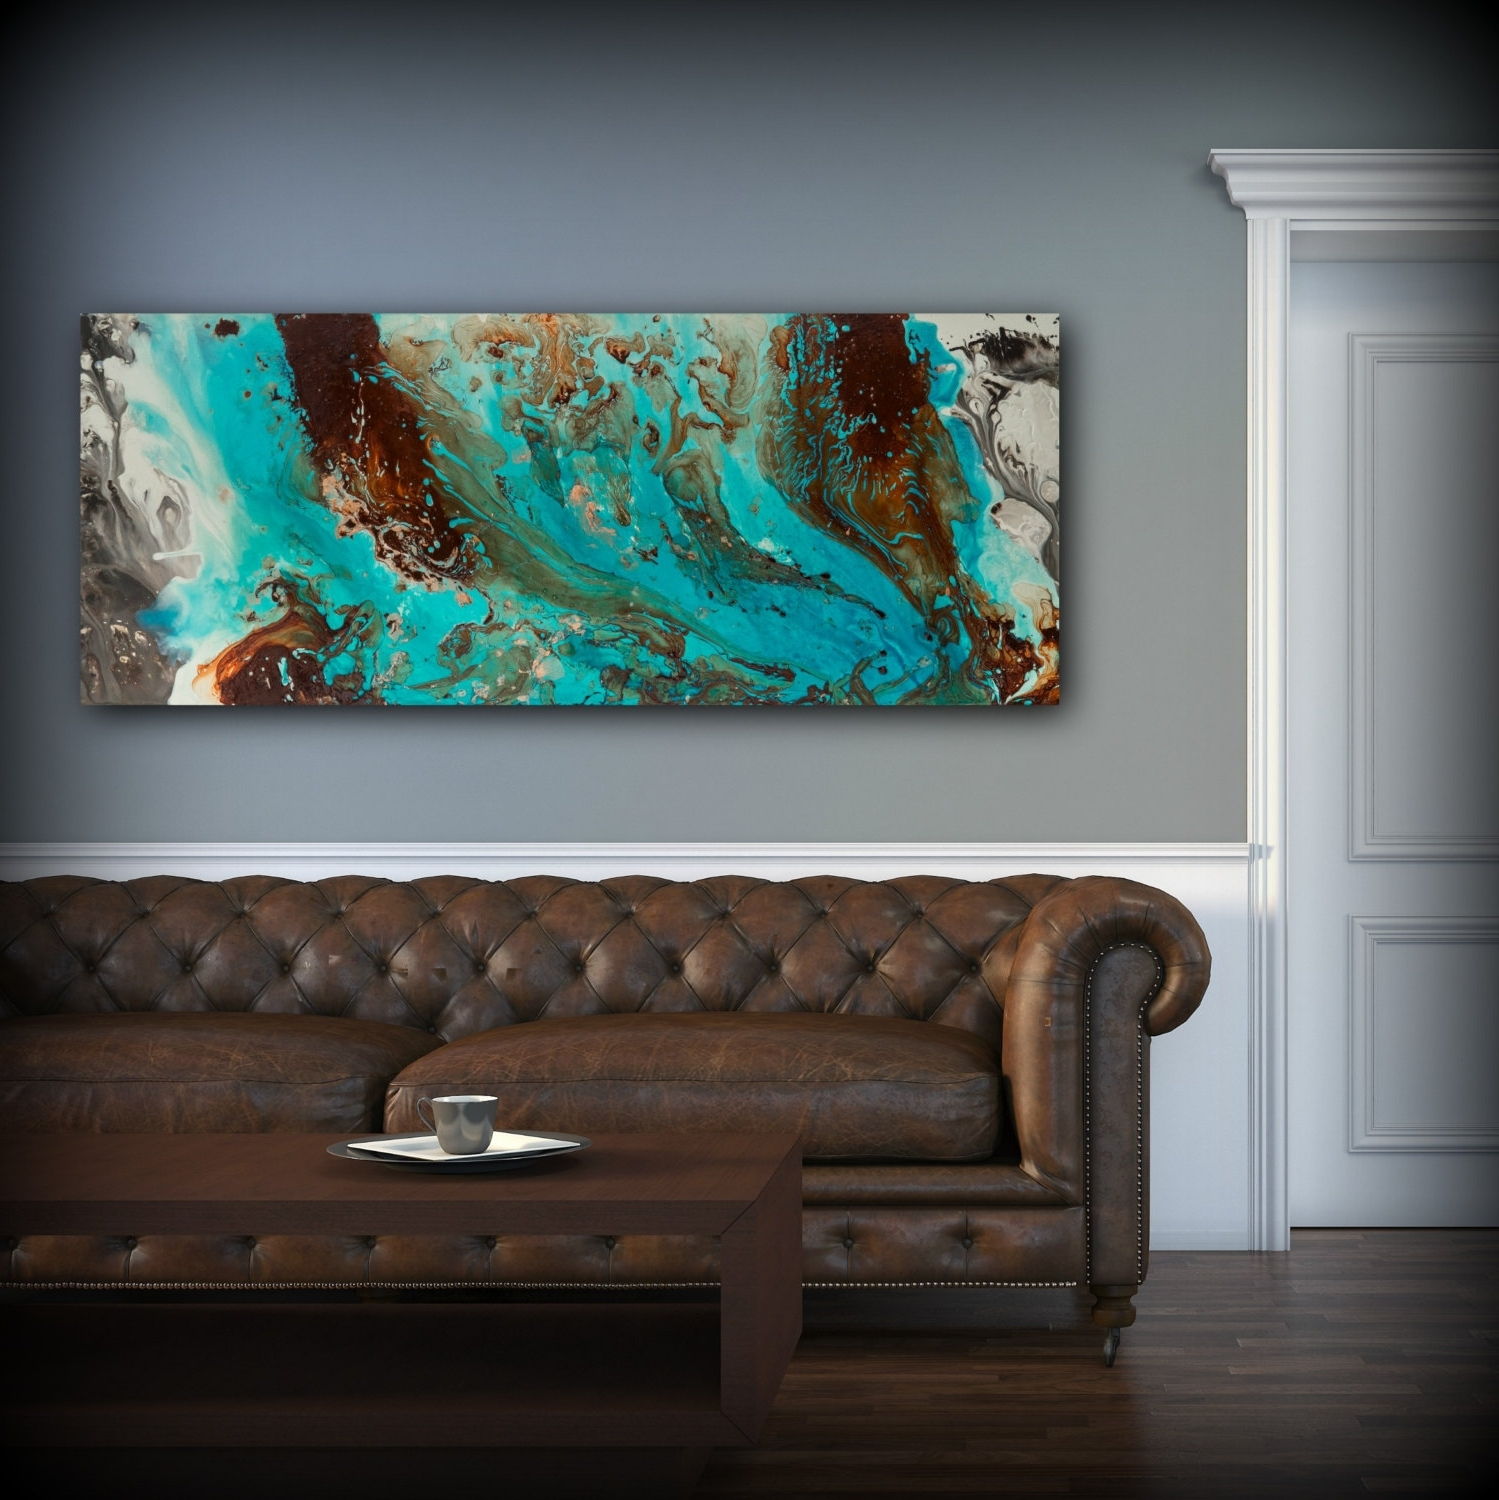 Most Popular Aqua Print, Blue And Brown Wall Art Decor, Colourful, Bohemian Art Pertaining To Teal And Brown Wall Art (View 1 of 15)